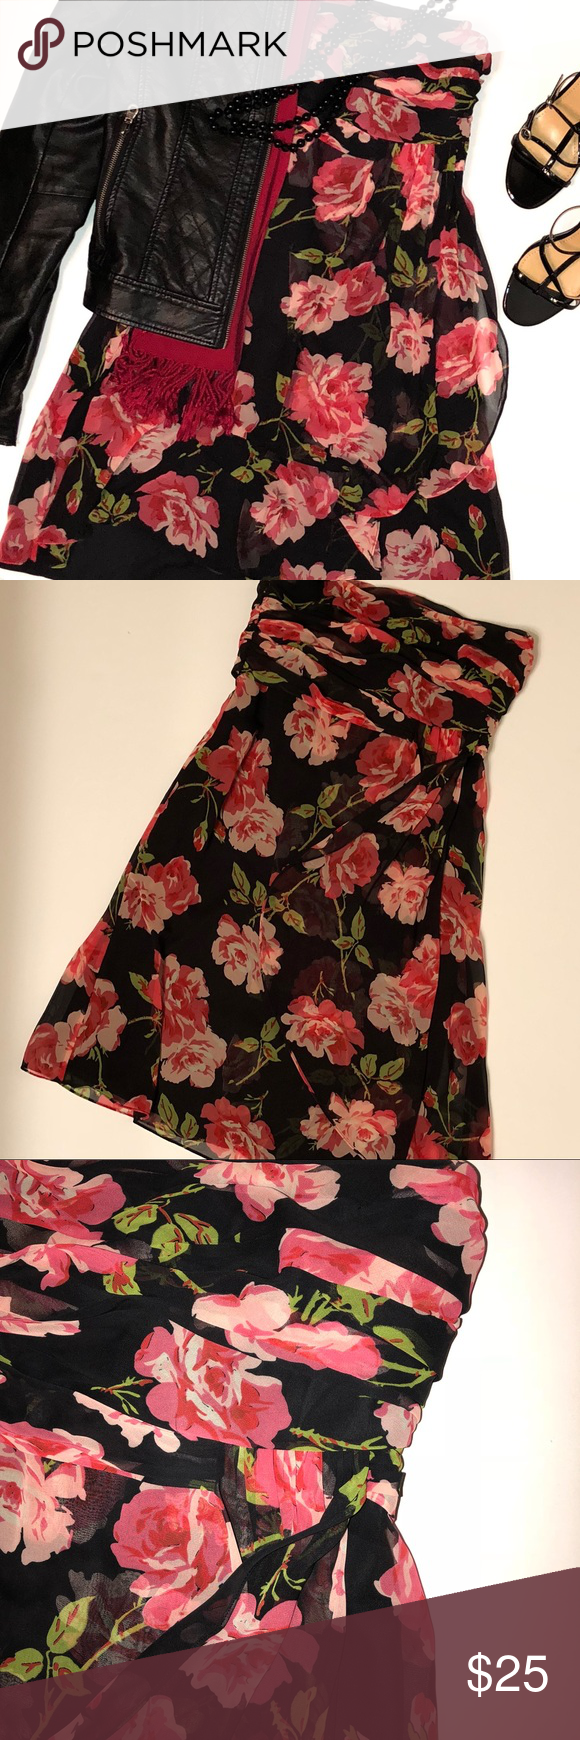 The limited black red floral strapless dress sz strapless dress